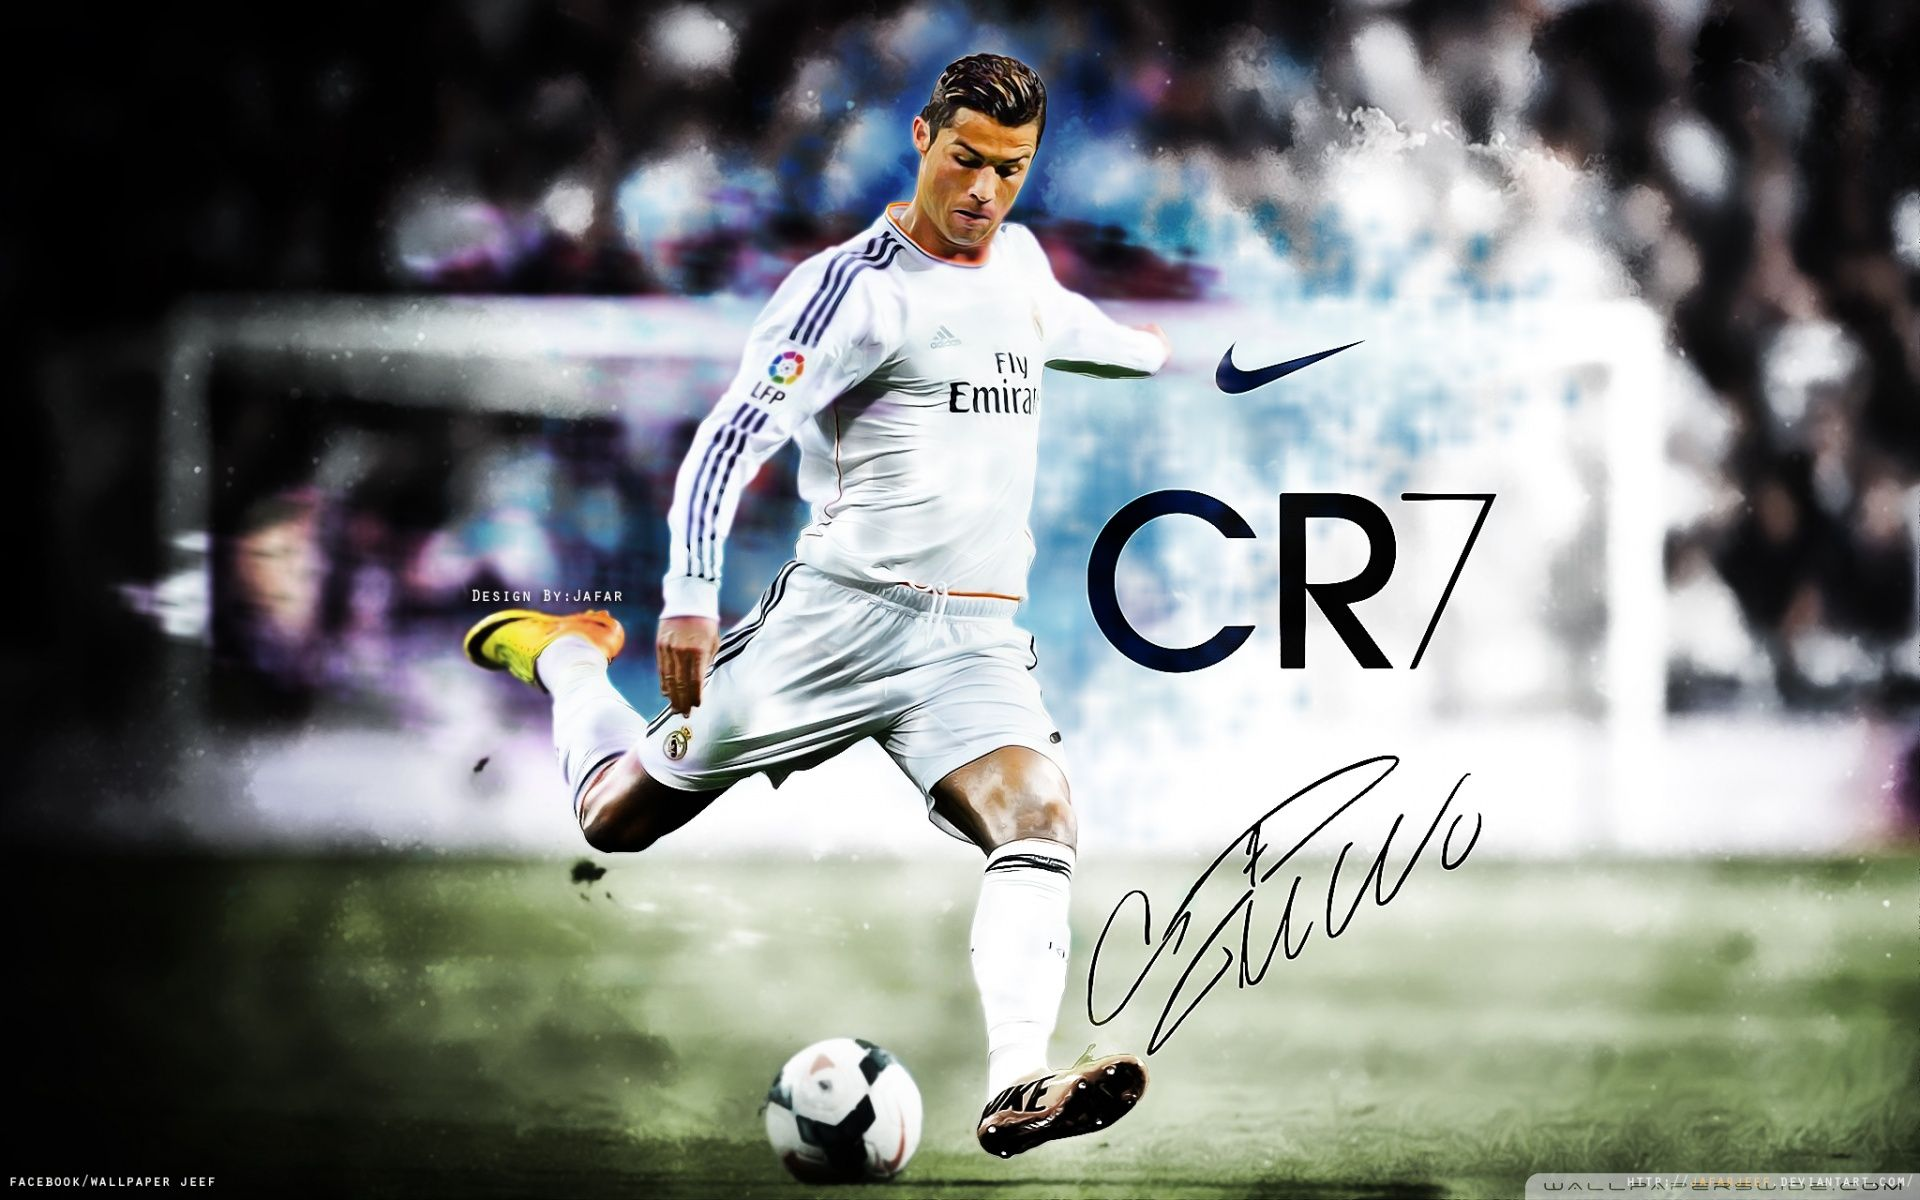 Art Of Cristiano Ronaldo Fans Wallpaper Sport Soccer: Pin By Body 10 On CR 7